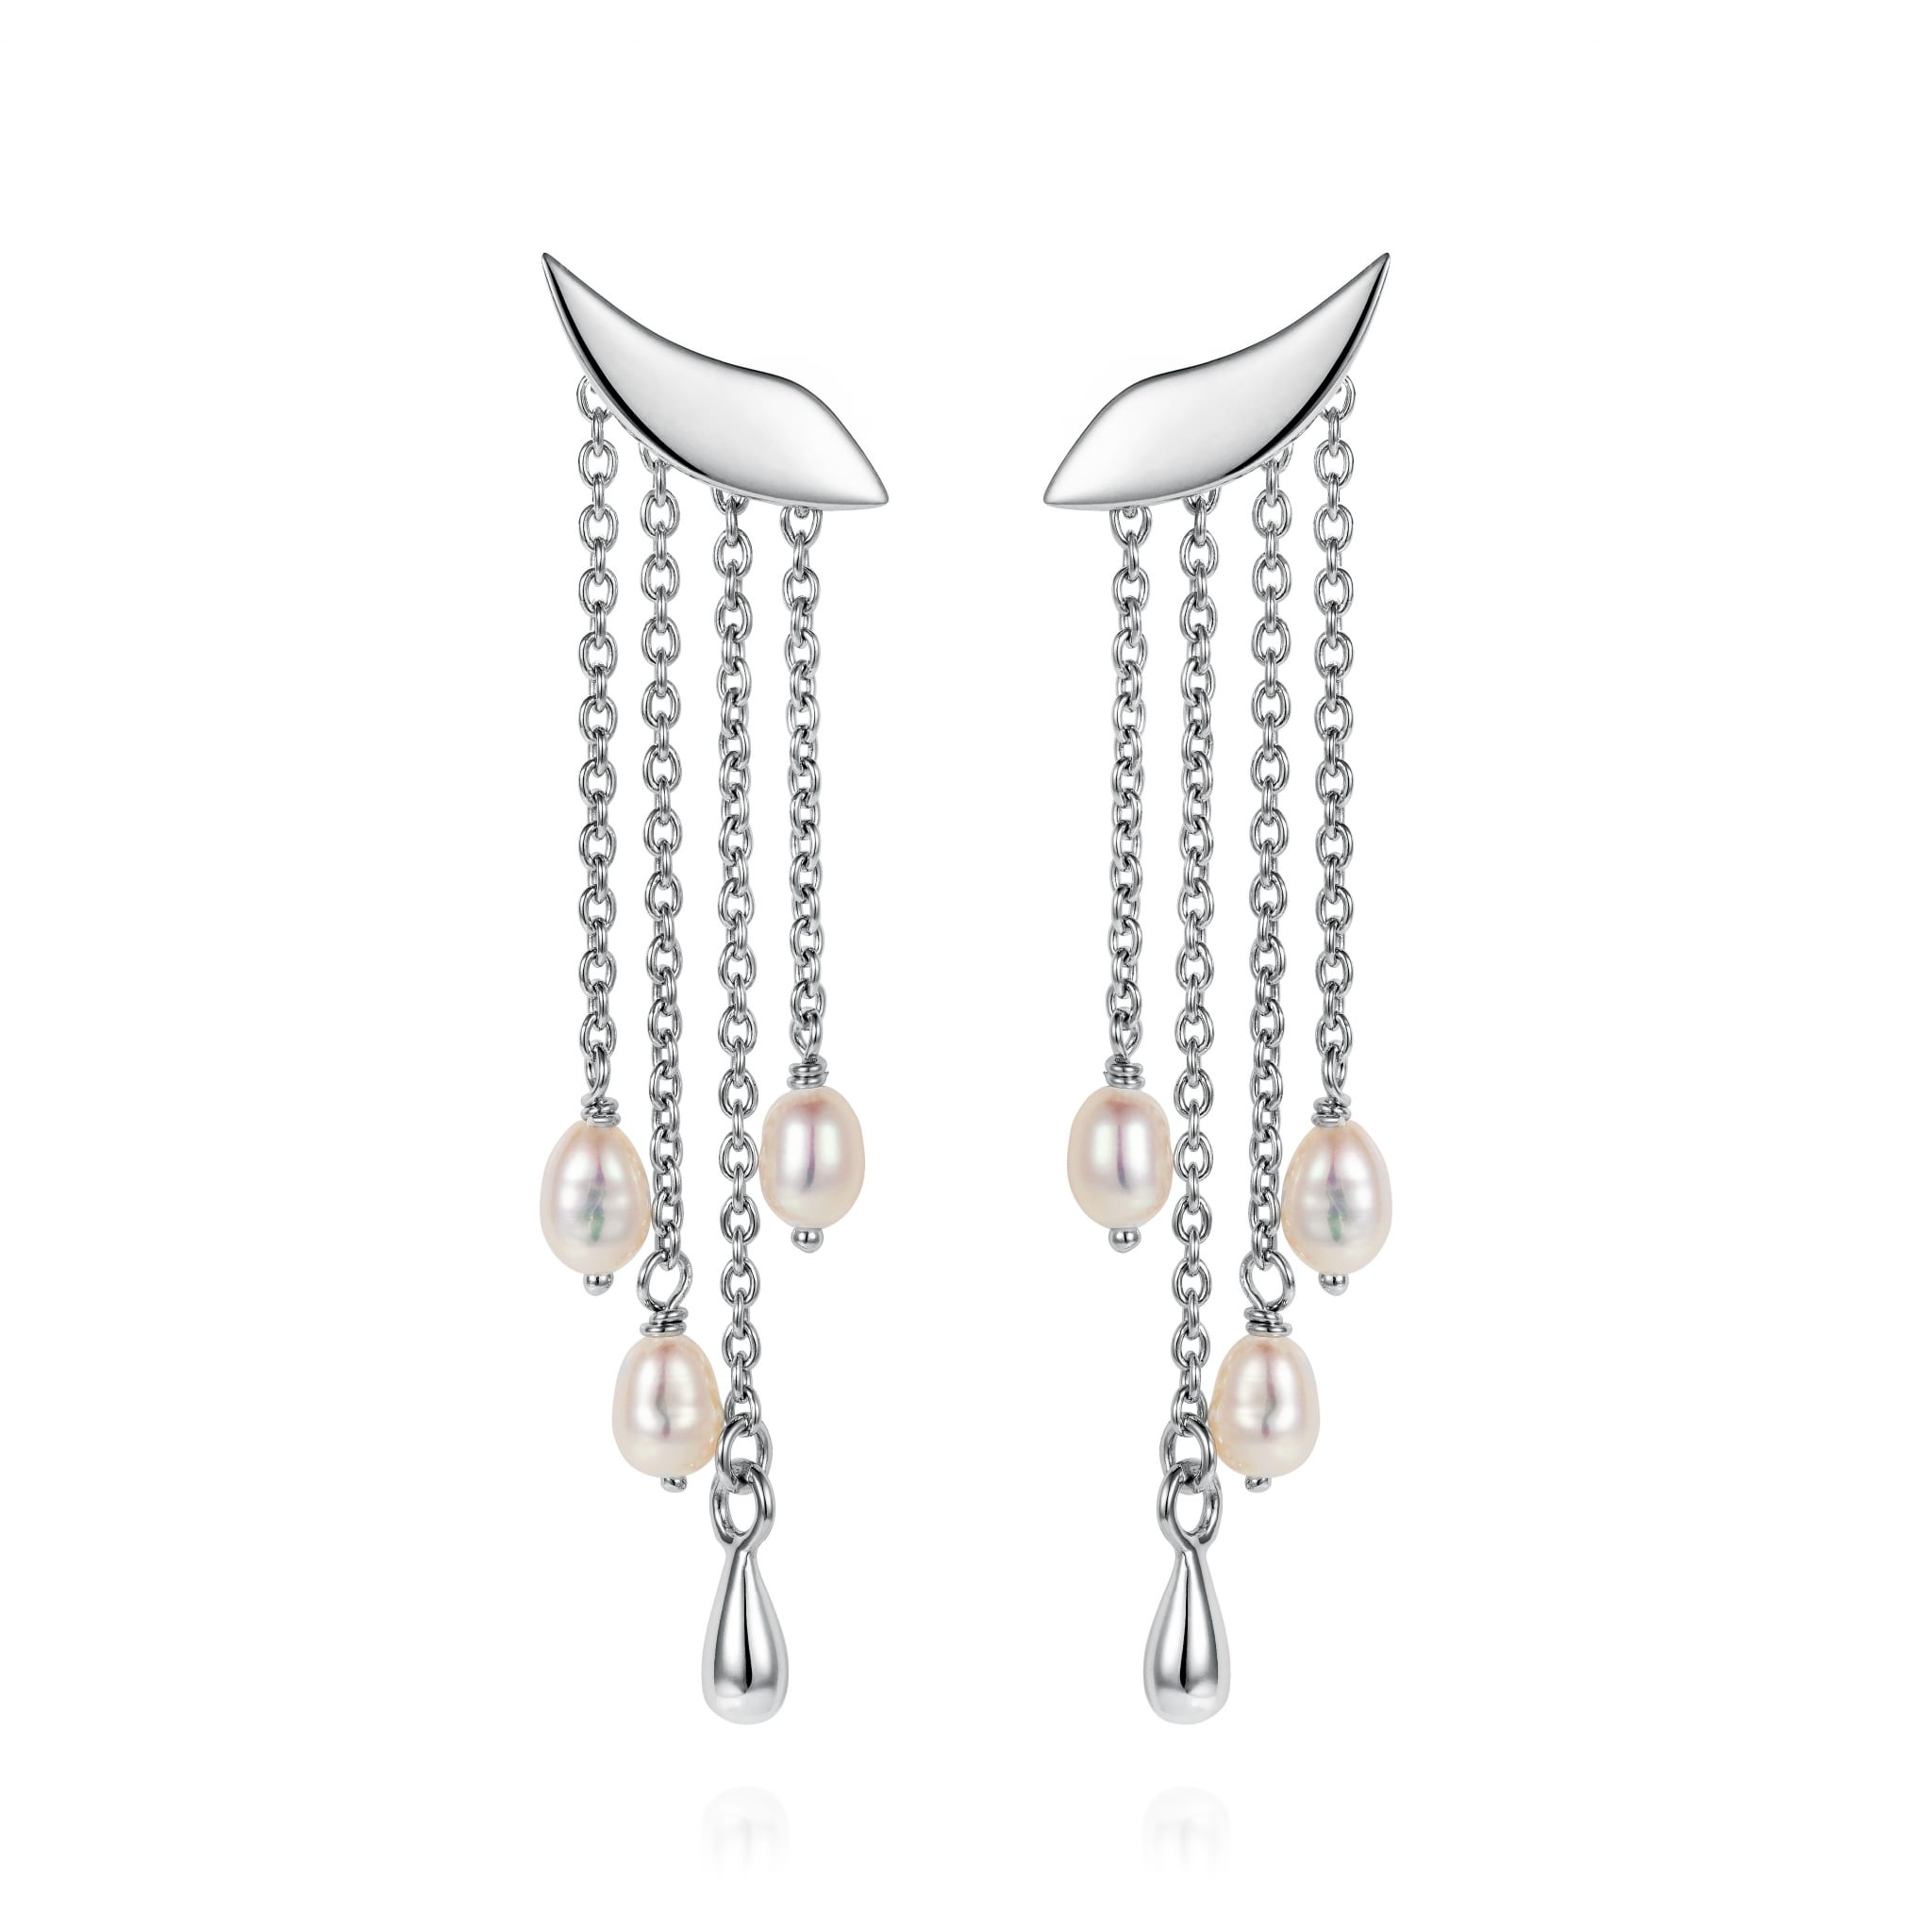 8- Lagertha cascade wing earrings-CBES103